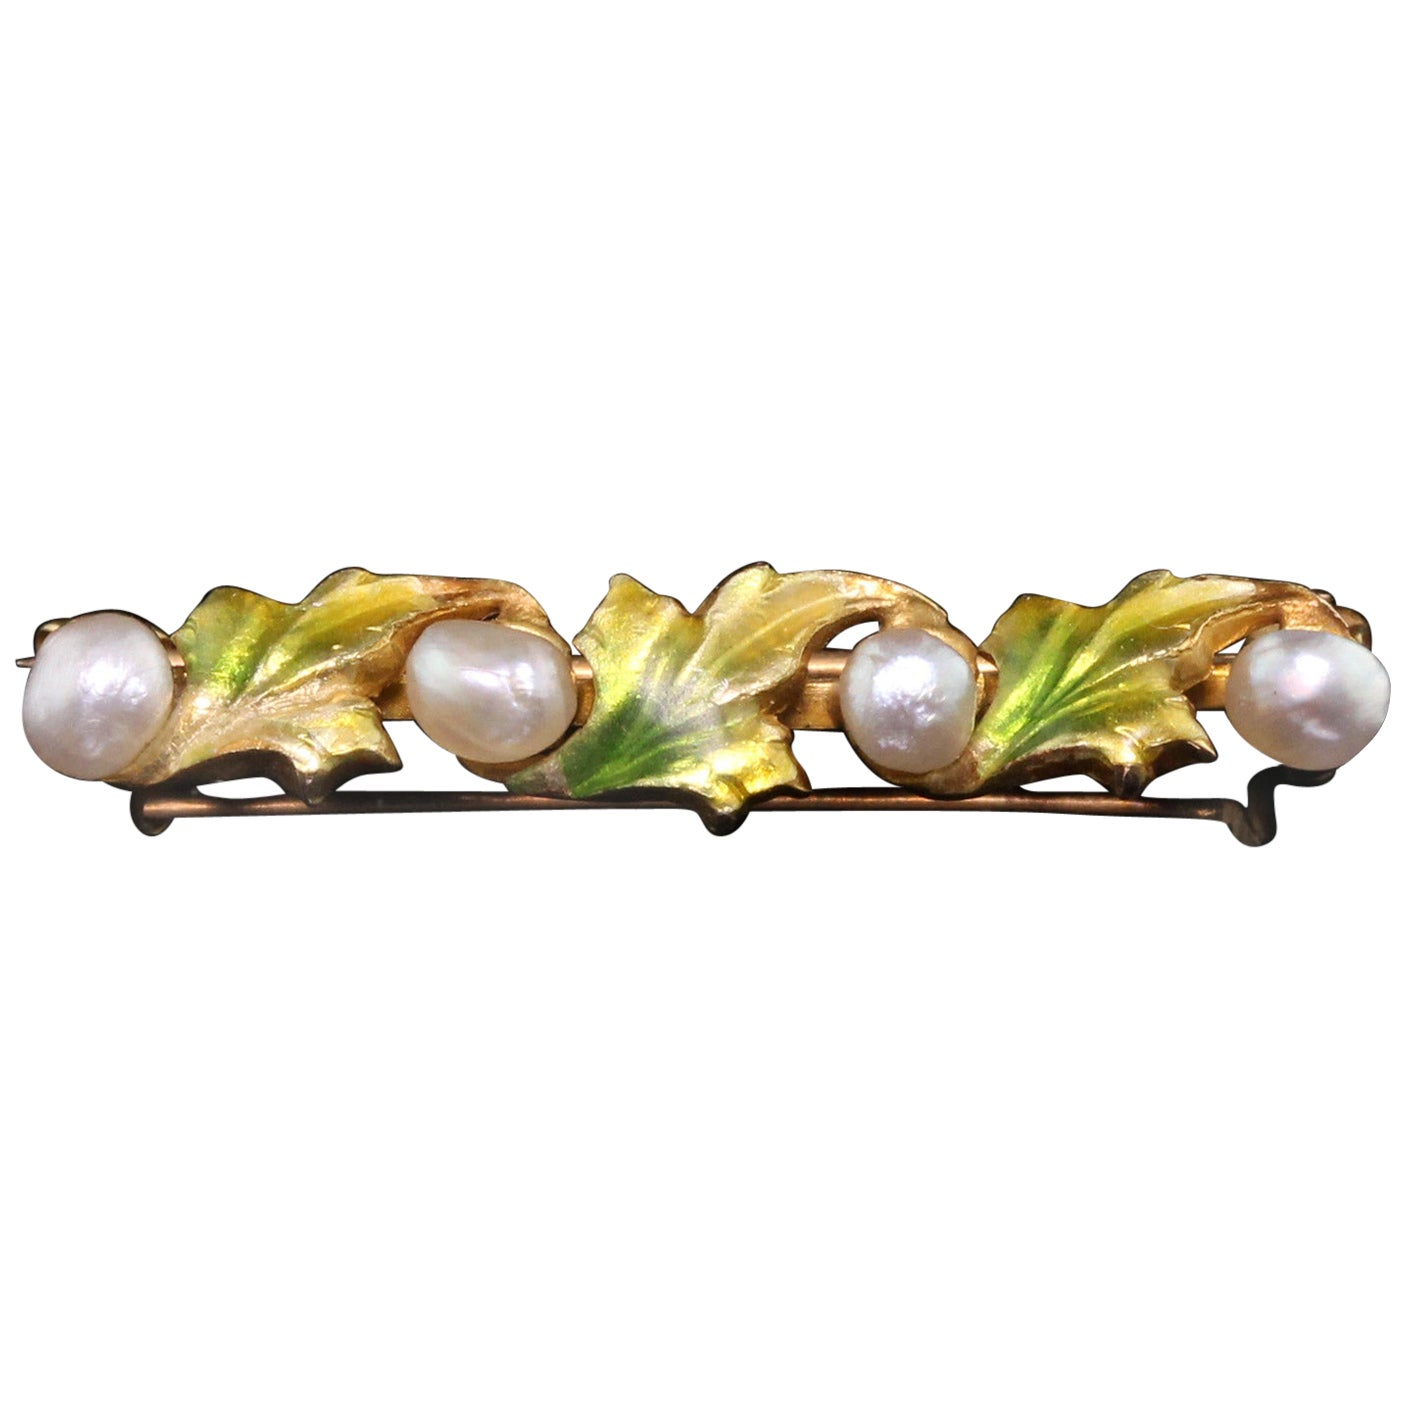 Antique Art Nouveau 14 Karat Yellow Gold, Pearl and Enamel Leaf Bar Brooch